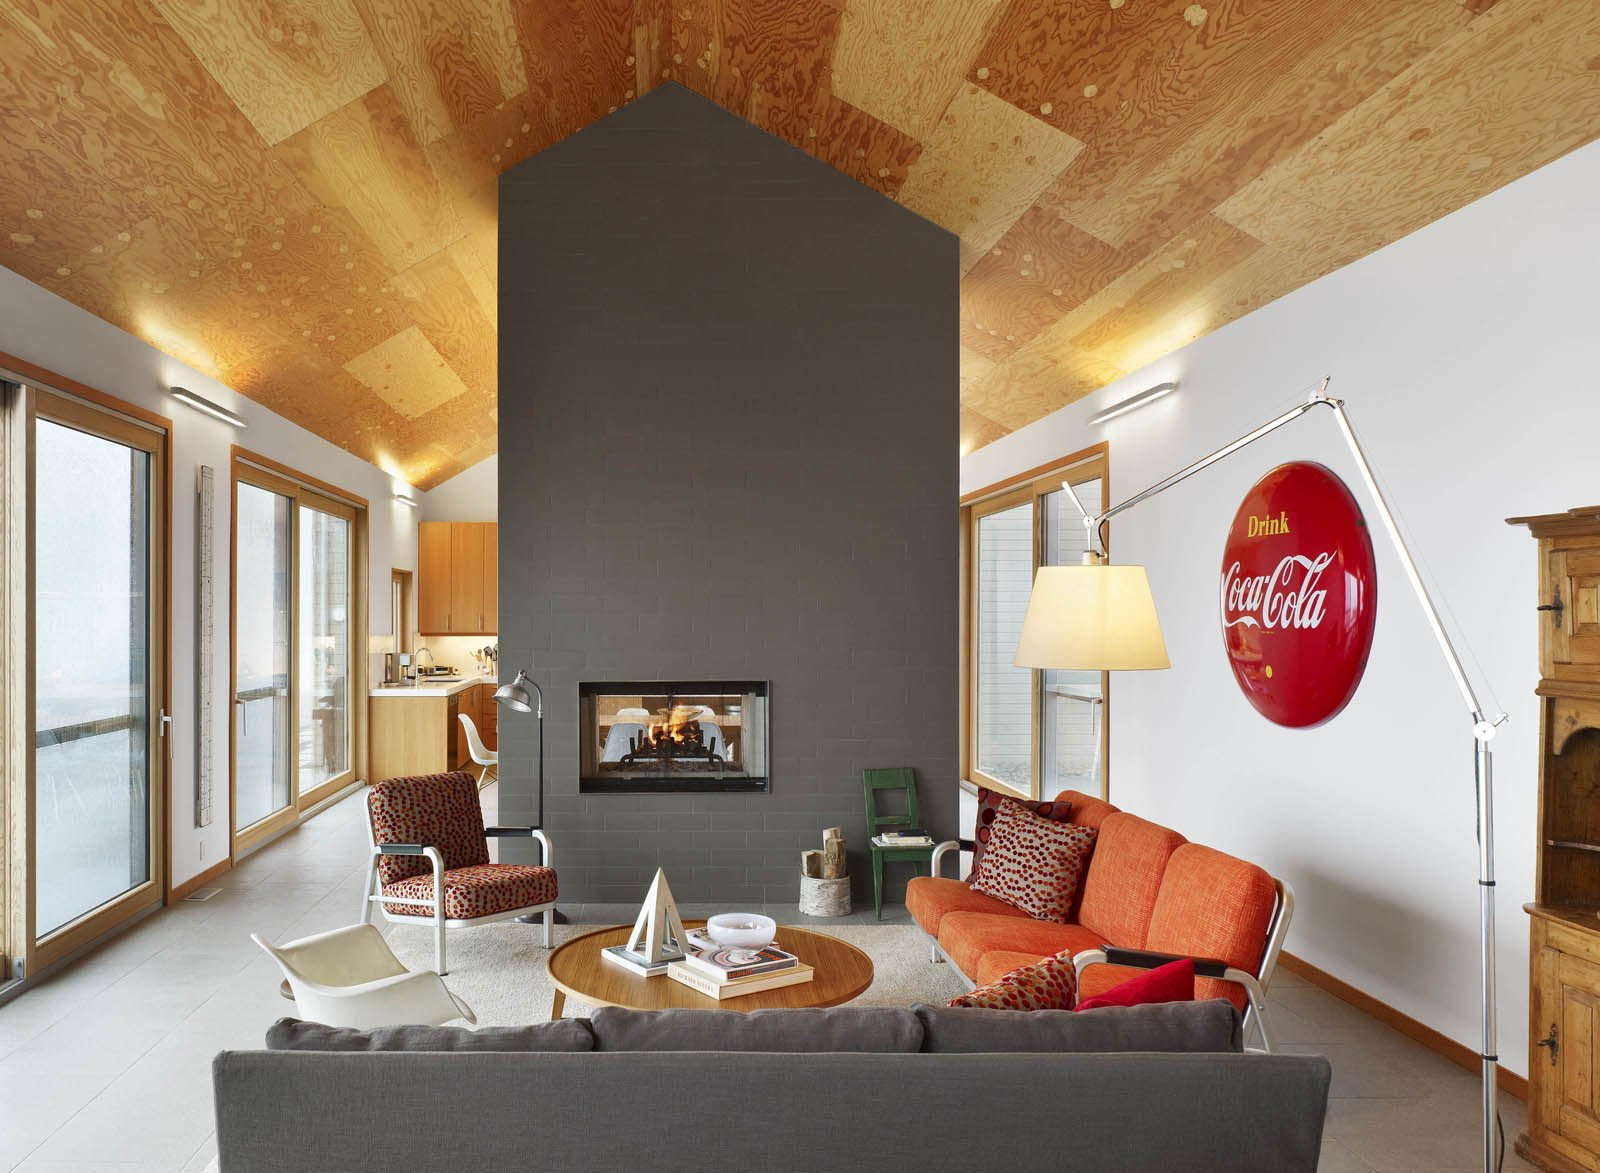 Though technically all one space, the living room, dining room, and kitchen are separated by the double-sided fireplace. When the couple comes to the house, the stay is center around relaxing, reading, walking, snowshoeing, and, in summer, swimming in the pool.  The Farm by Miyoko Ohtake